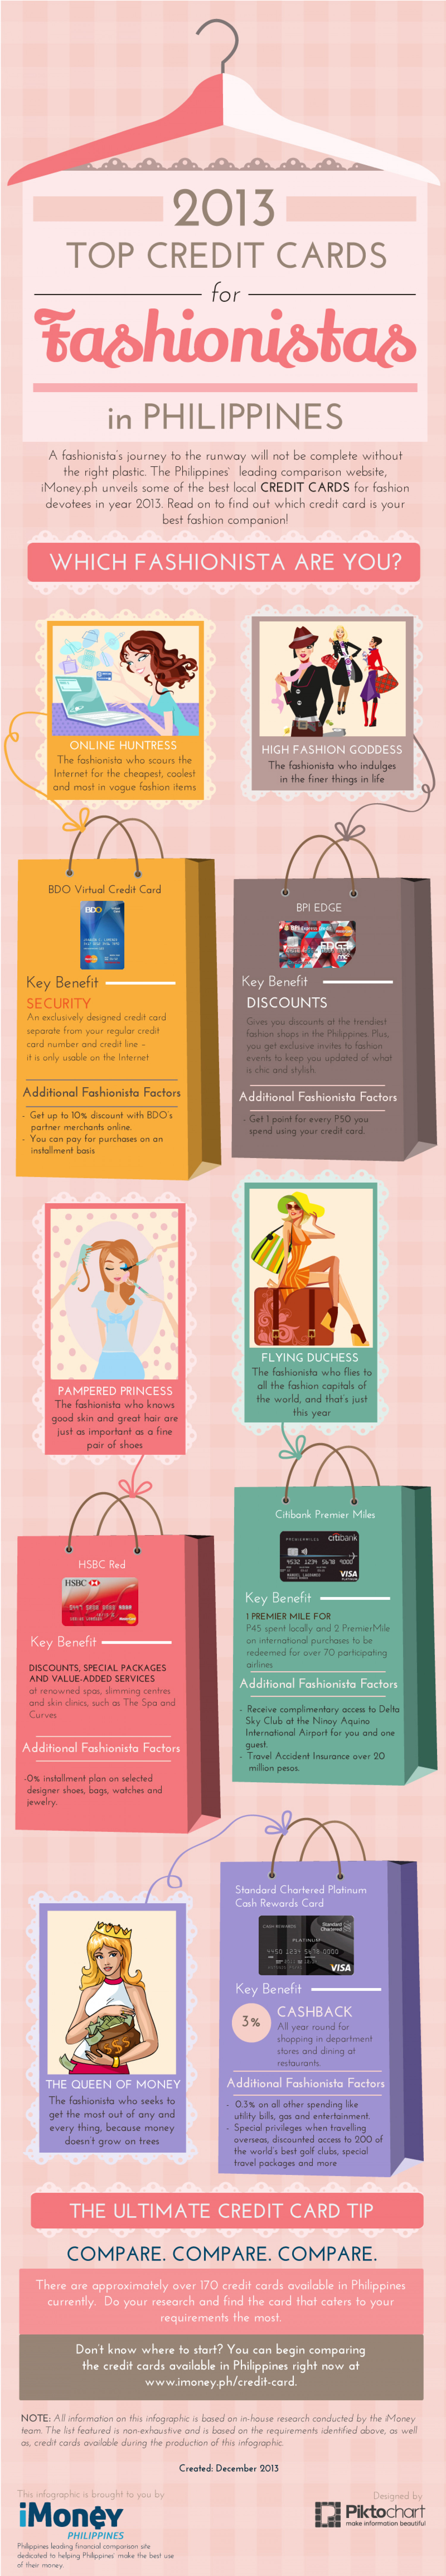 Top Credit Cards for Fashionistas in the Philippines 2013 Infographic